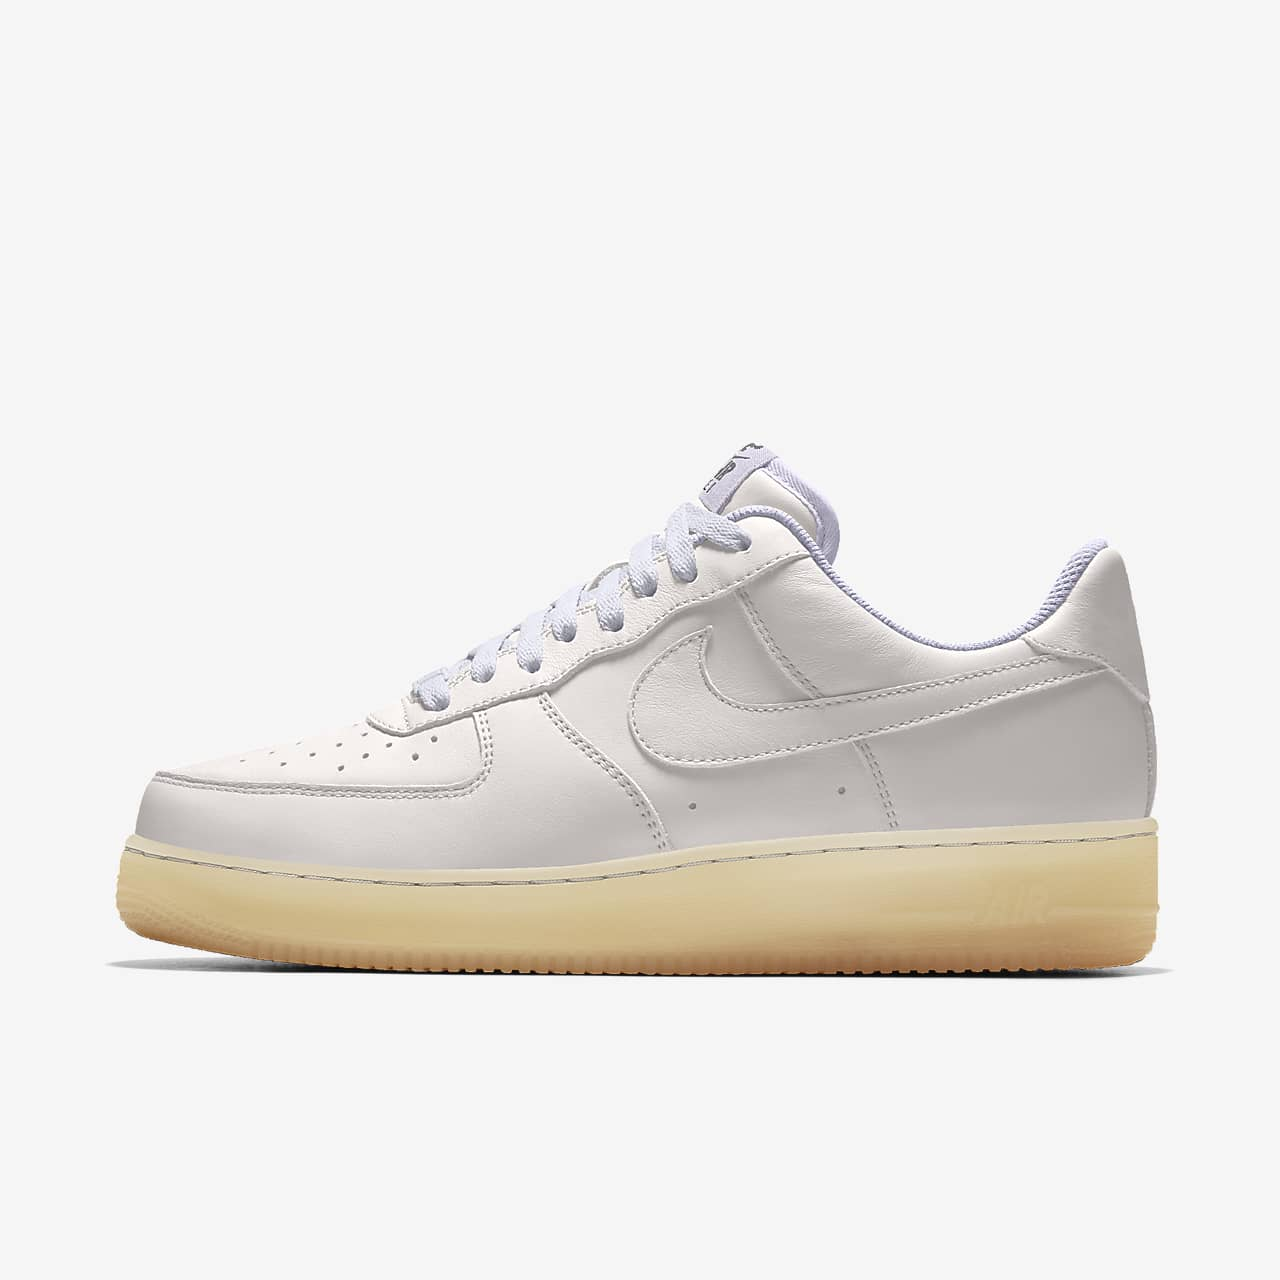 Nike Air Force 1 Low By You egyedi férficipő